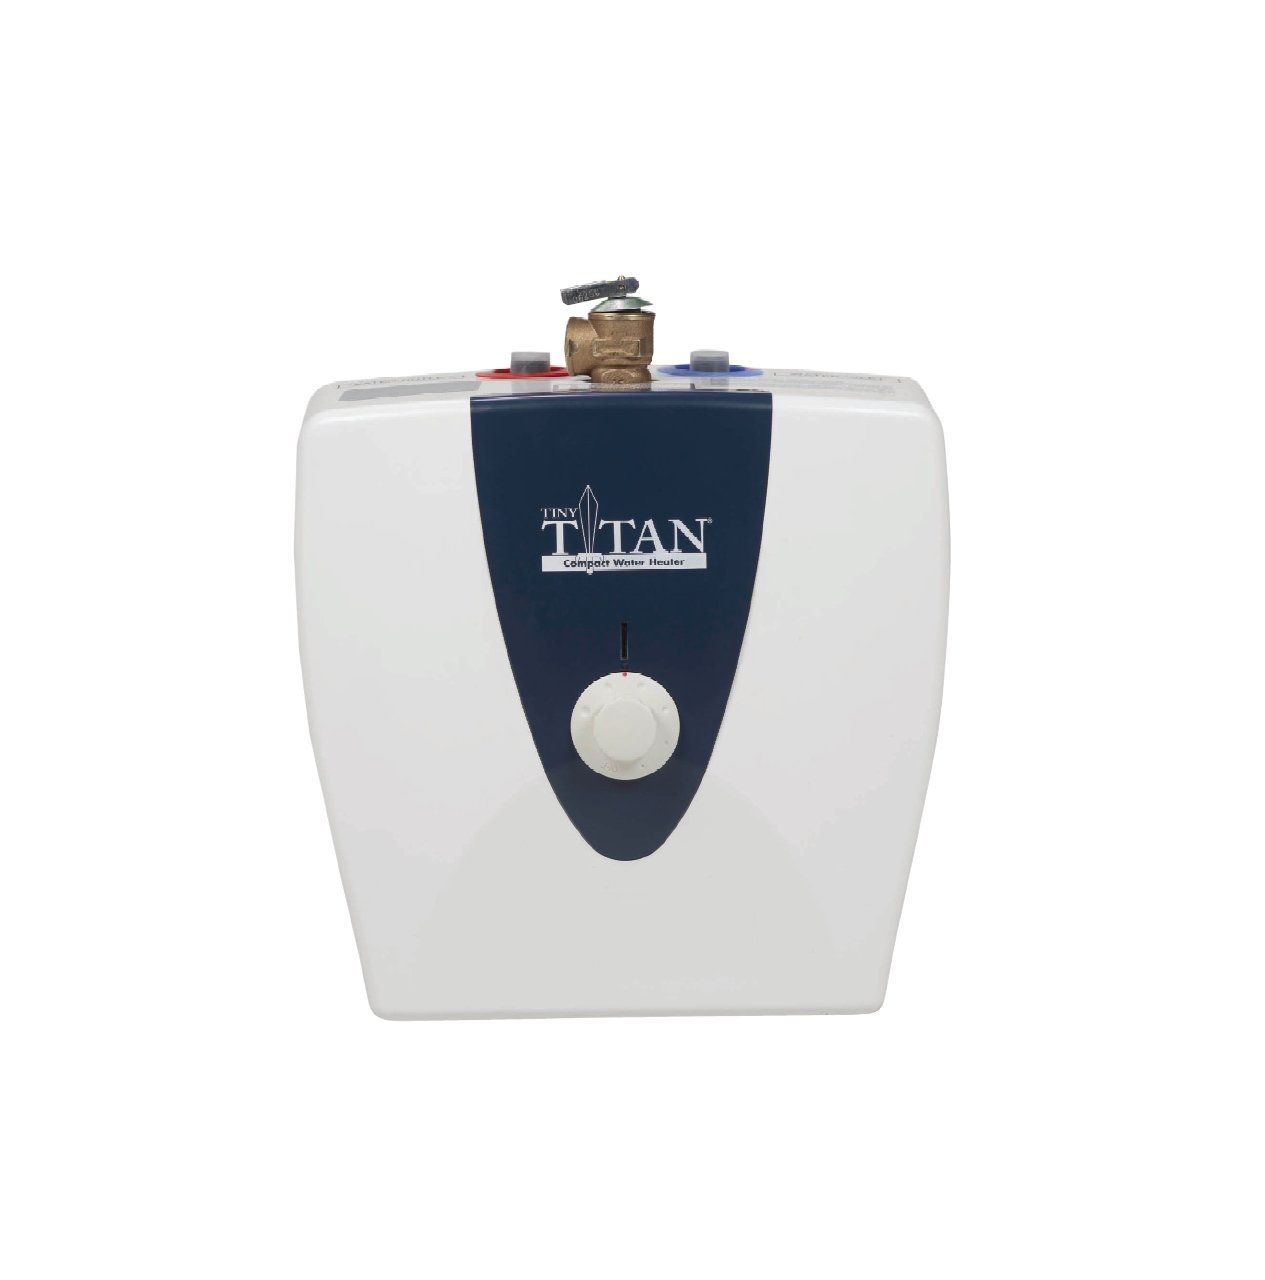 American Water Heaters E1E2.5US015V Tiny Titan Electric Water Heater, 2.5 Gallon by American Water Heaters